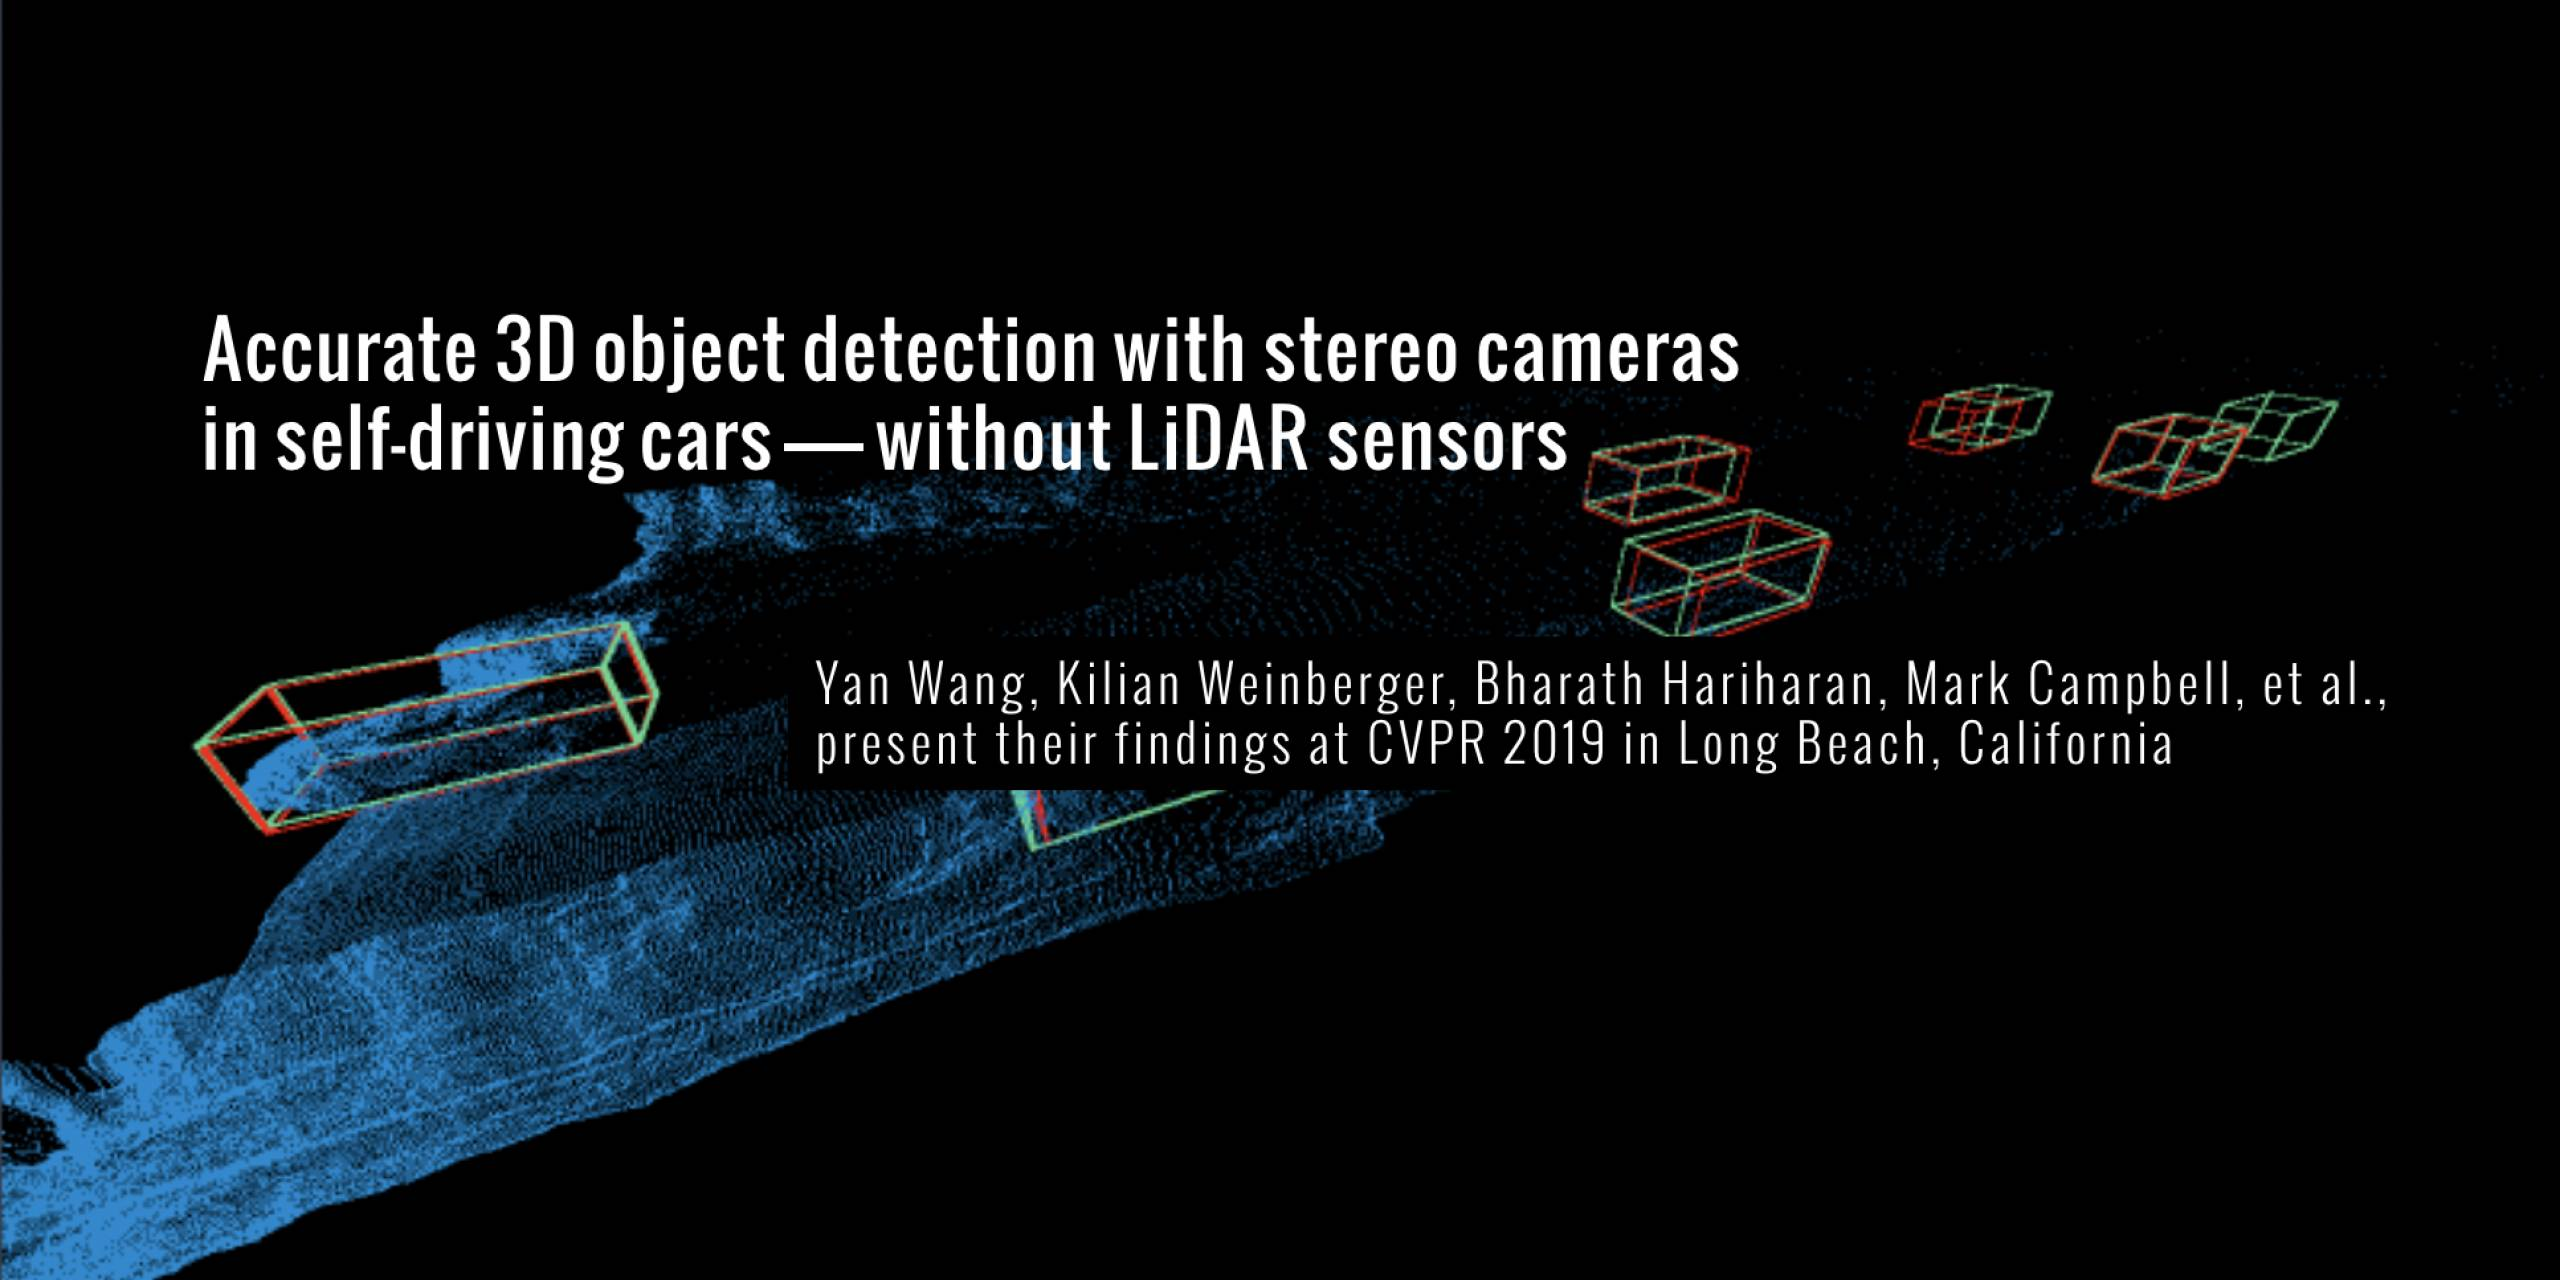 Accurate 3D object detection with stereo cameras in self-driving cars—without LiDAR sensors